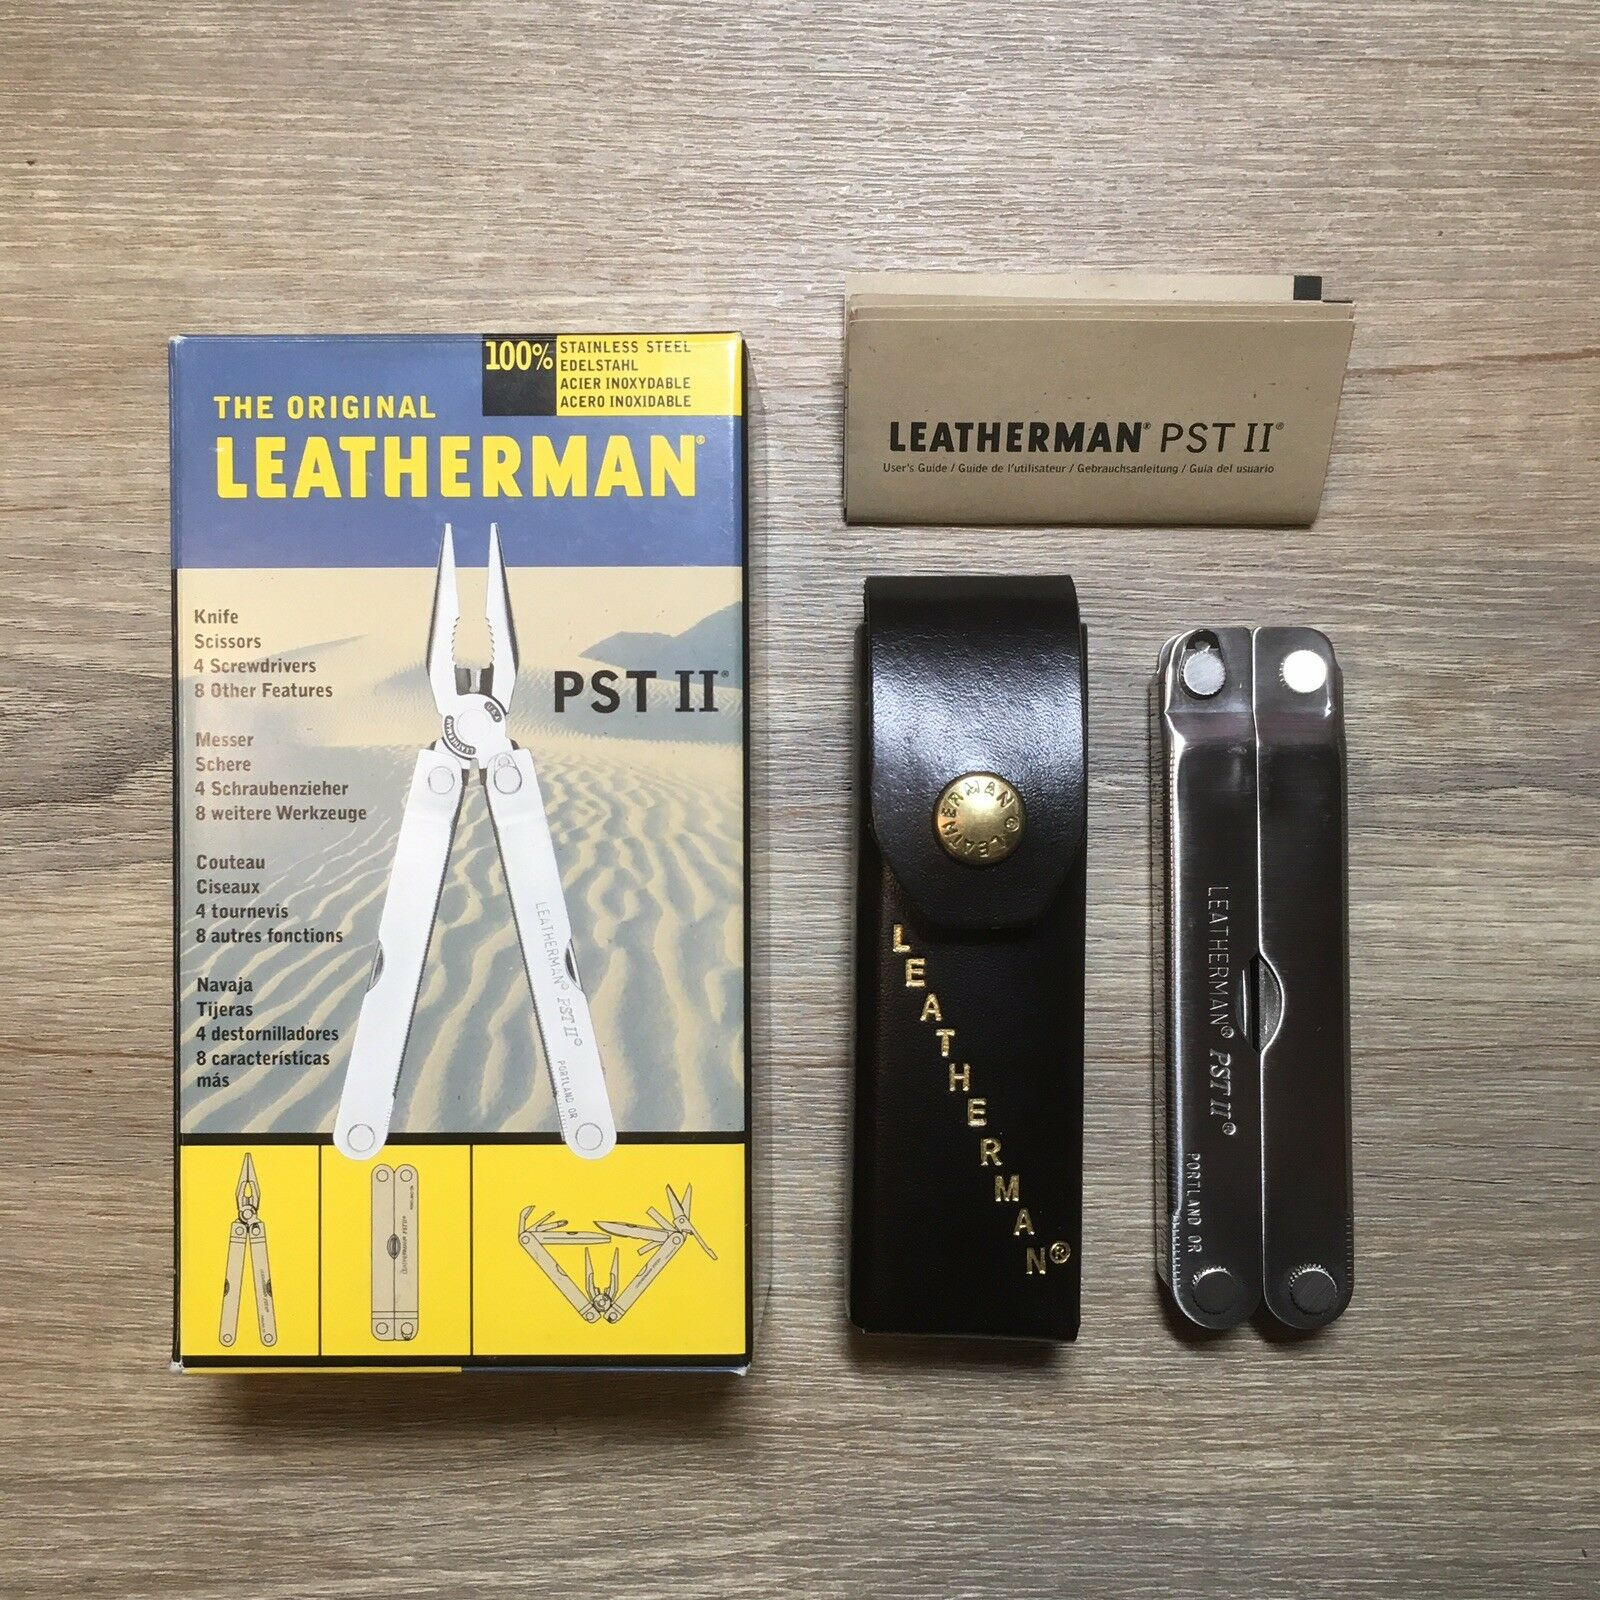 New  Leatherman PST  II Original Leather Case and Box. (Made in USA)  save 60% discount and fast shipping worldwide